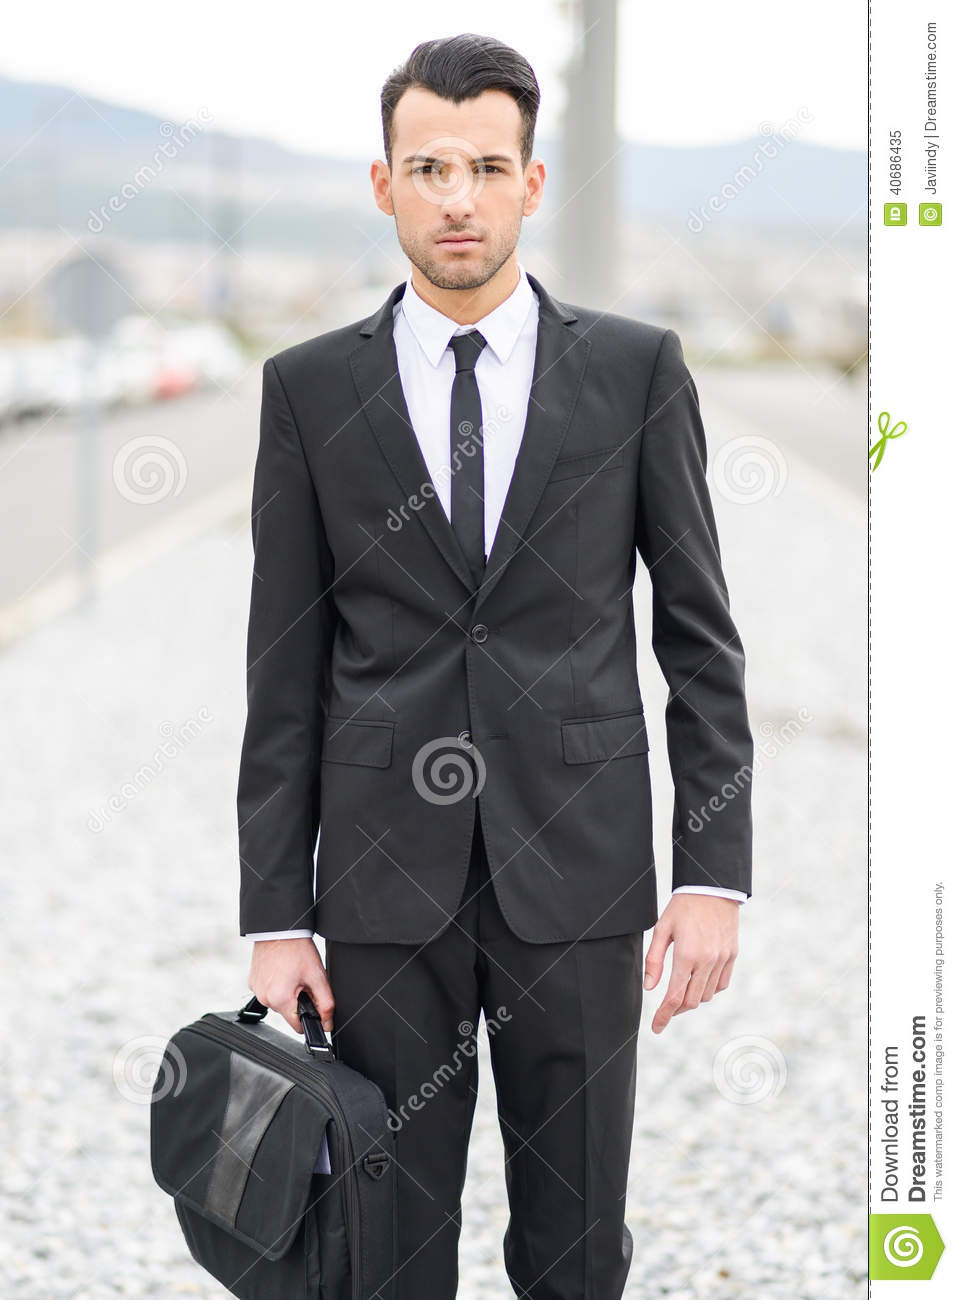 Young Businessman Near A Office Building Stock Photo - Image: 40686435